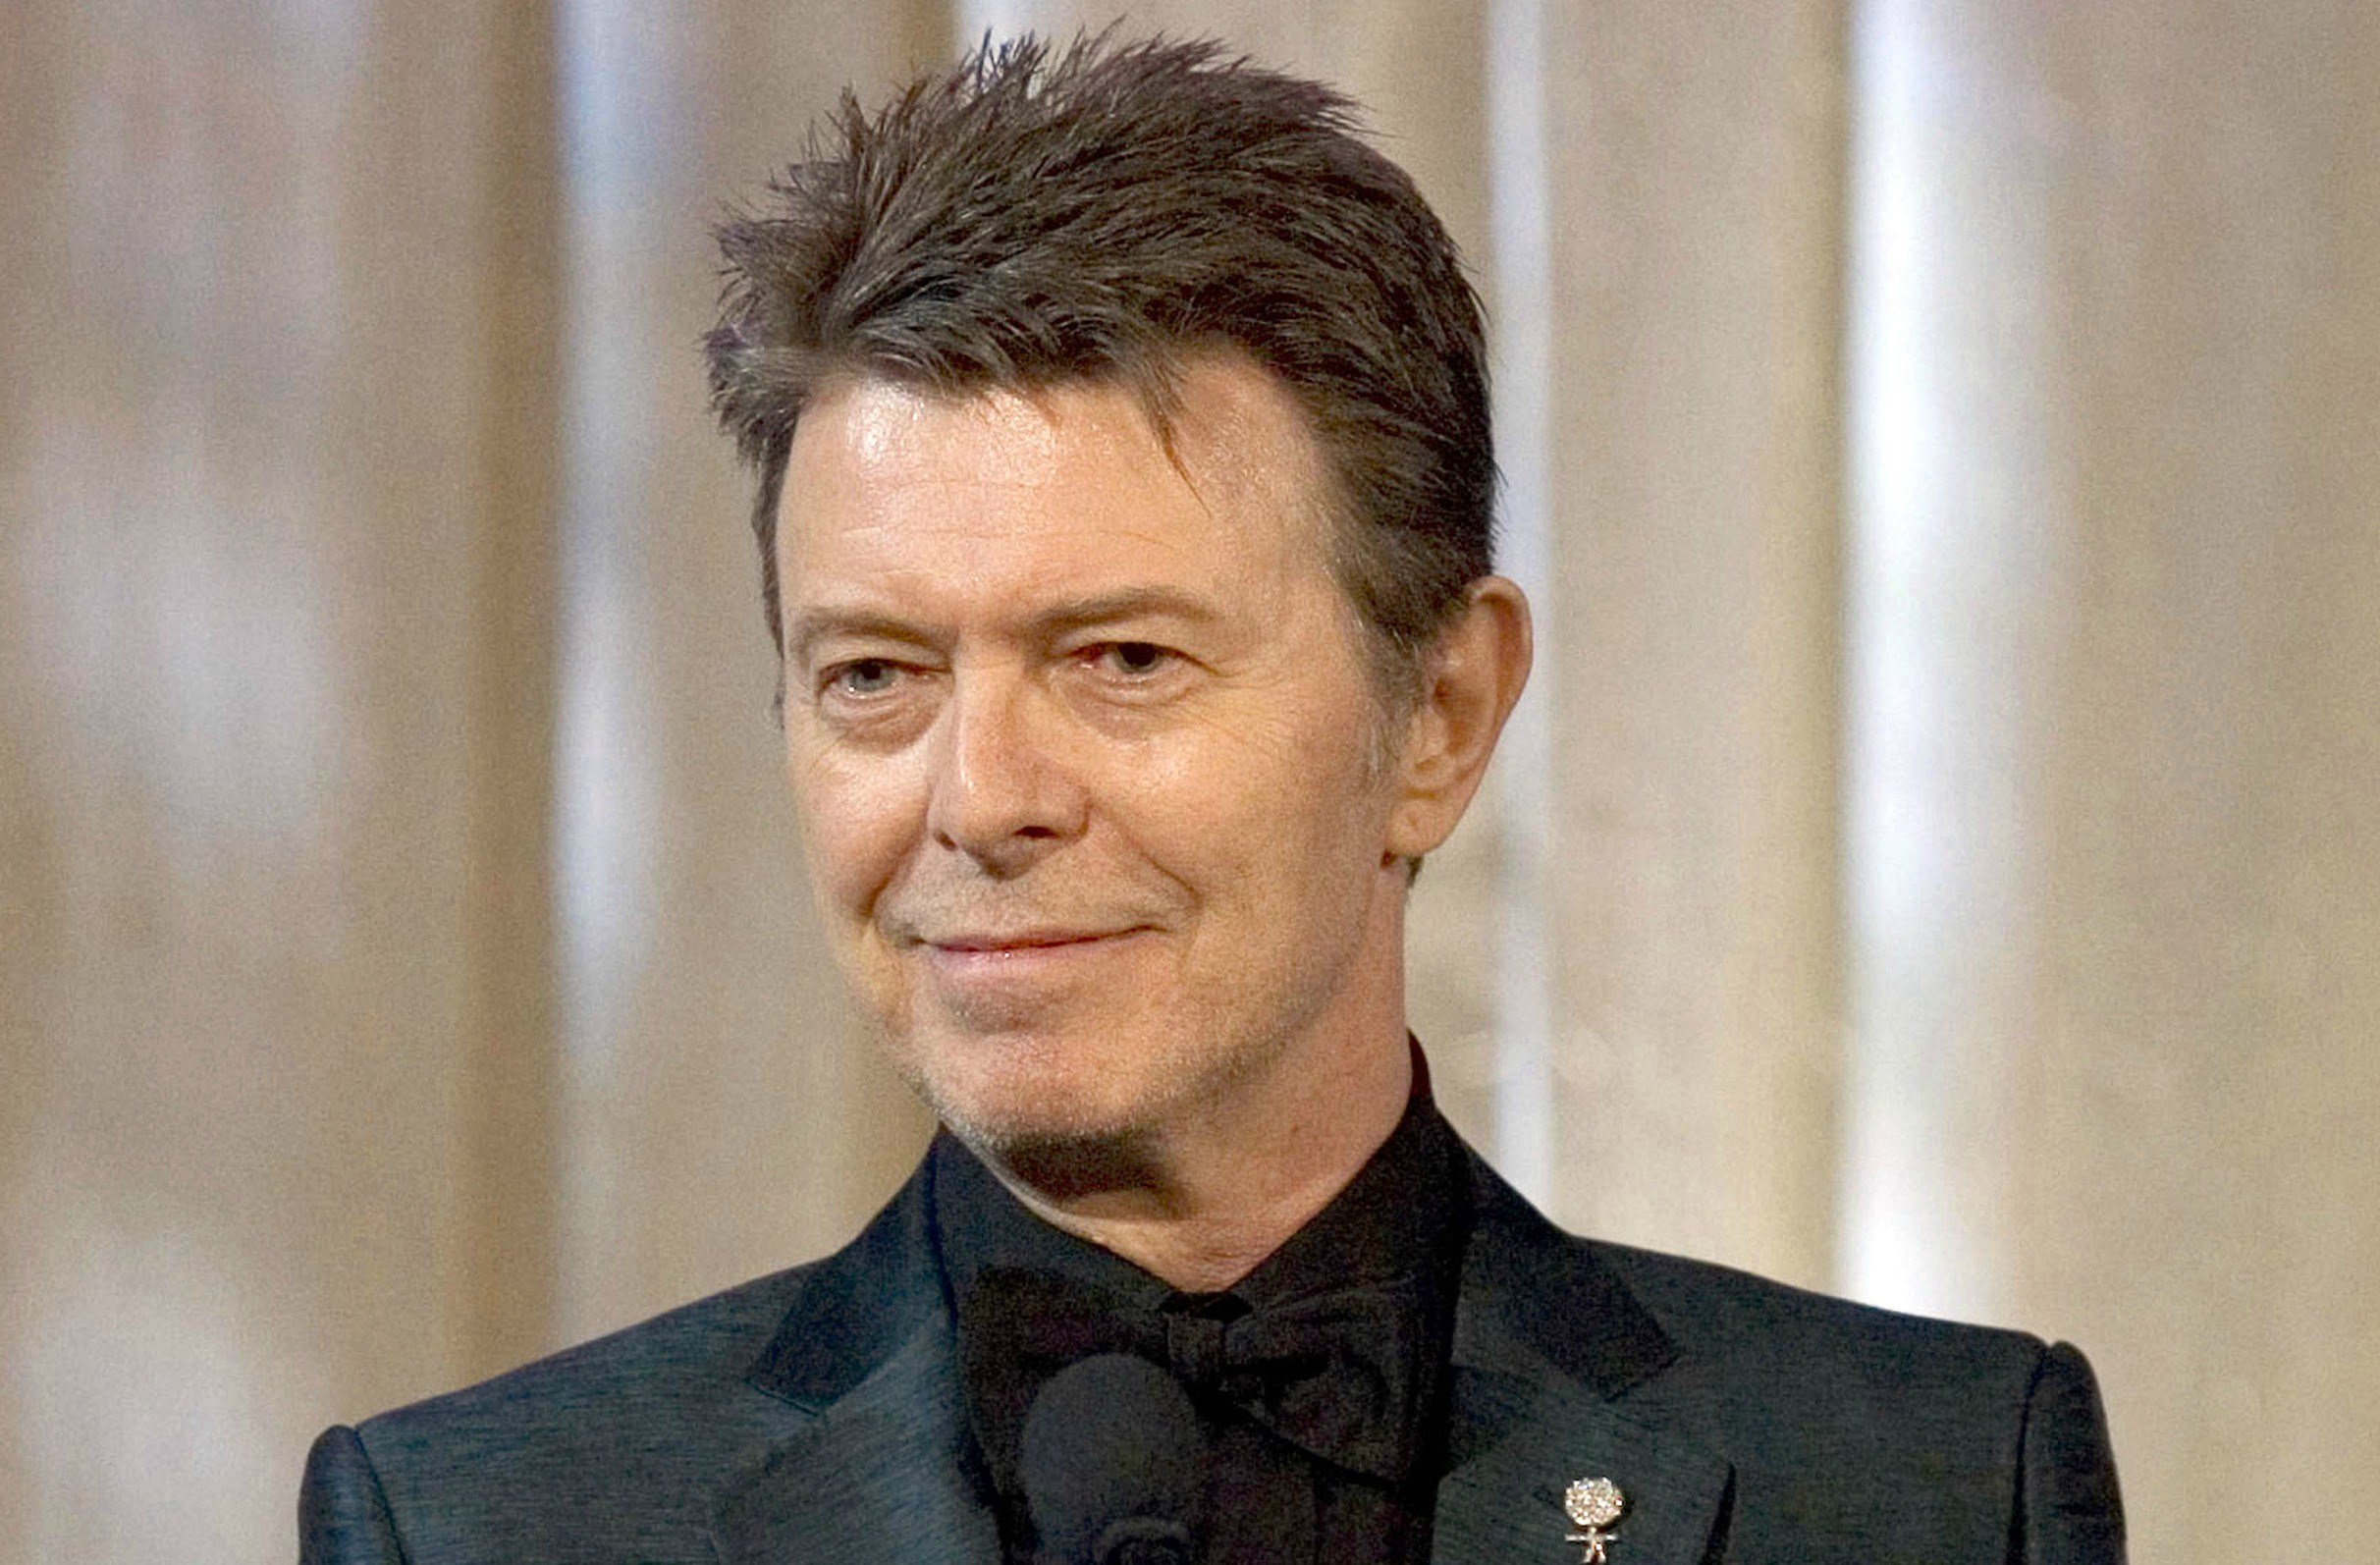 In this June 5, 2007 file photo, singer David Bowie accepts the lifetime achievement award at the 11th Annual Webby Awards in New York. (AP Photo/Stephen Chernin, File)